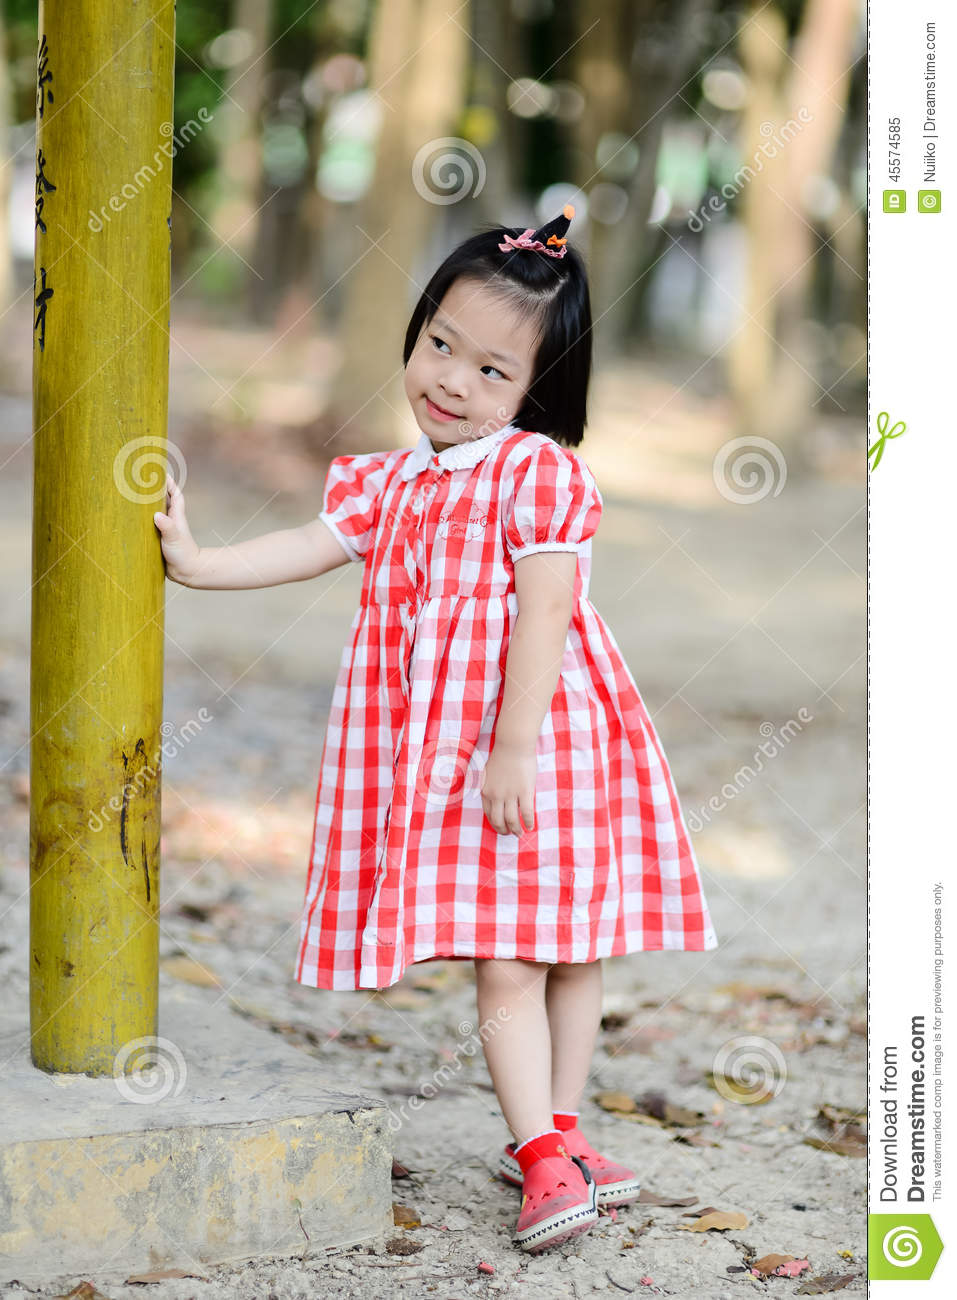 Shy Asian Girl In The Park Outdoor. Stock Photo - Image ...